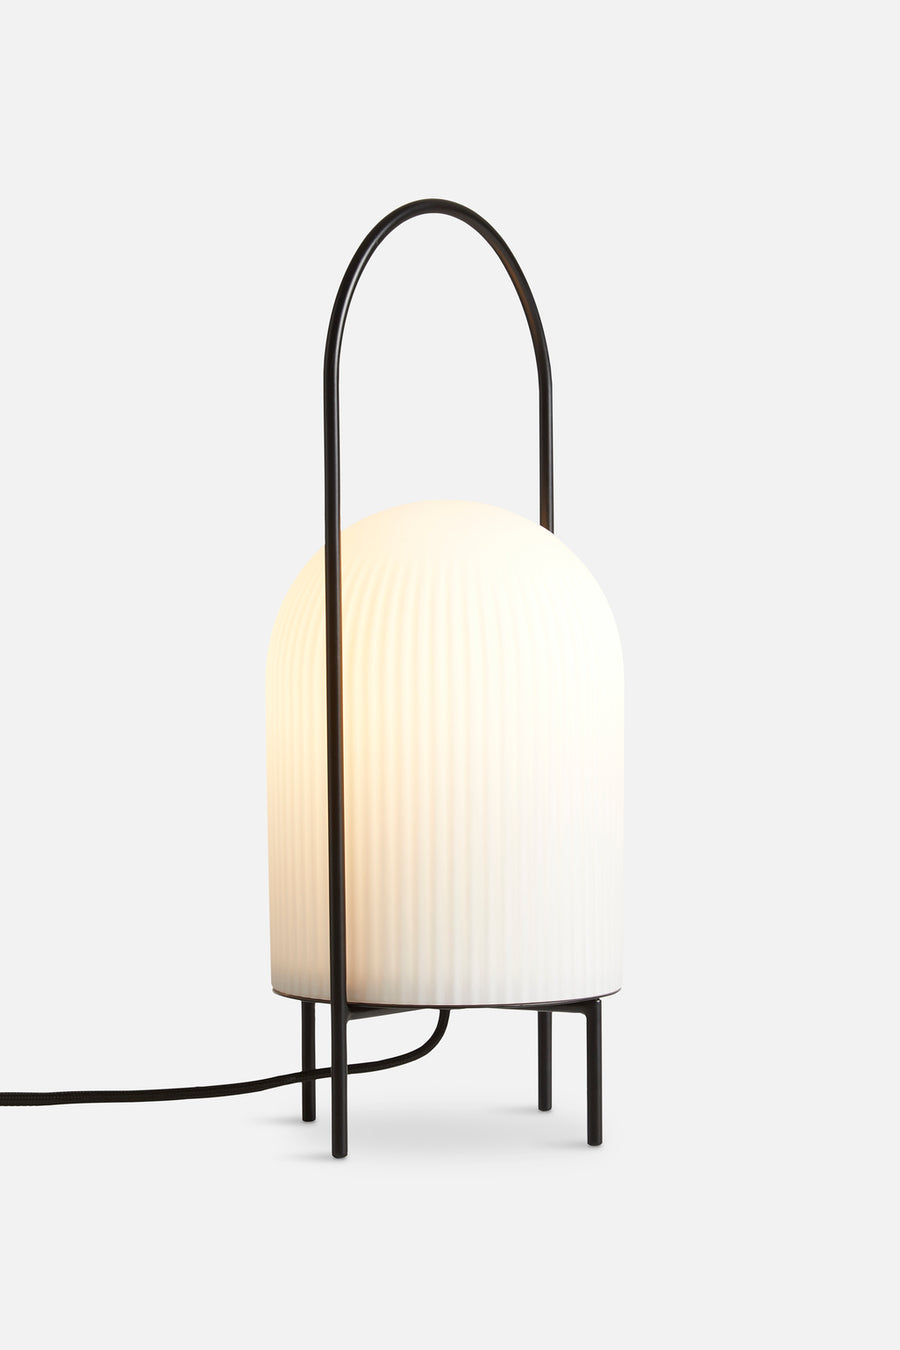 Woud | Ghost Lamp